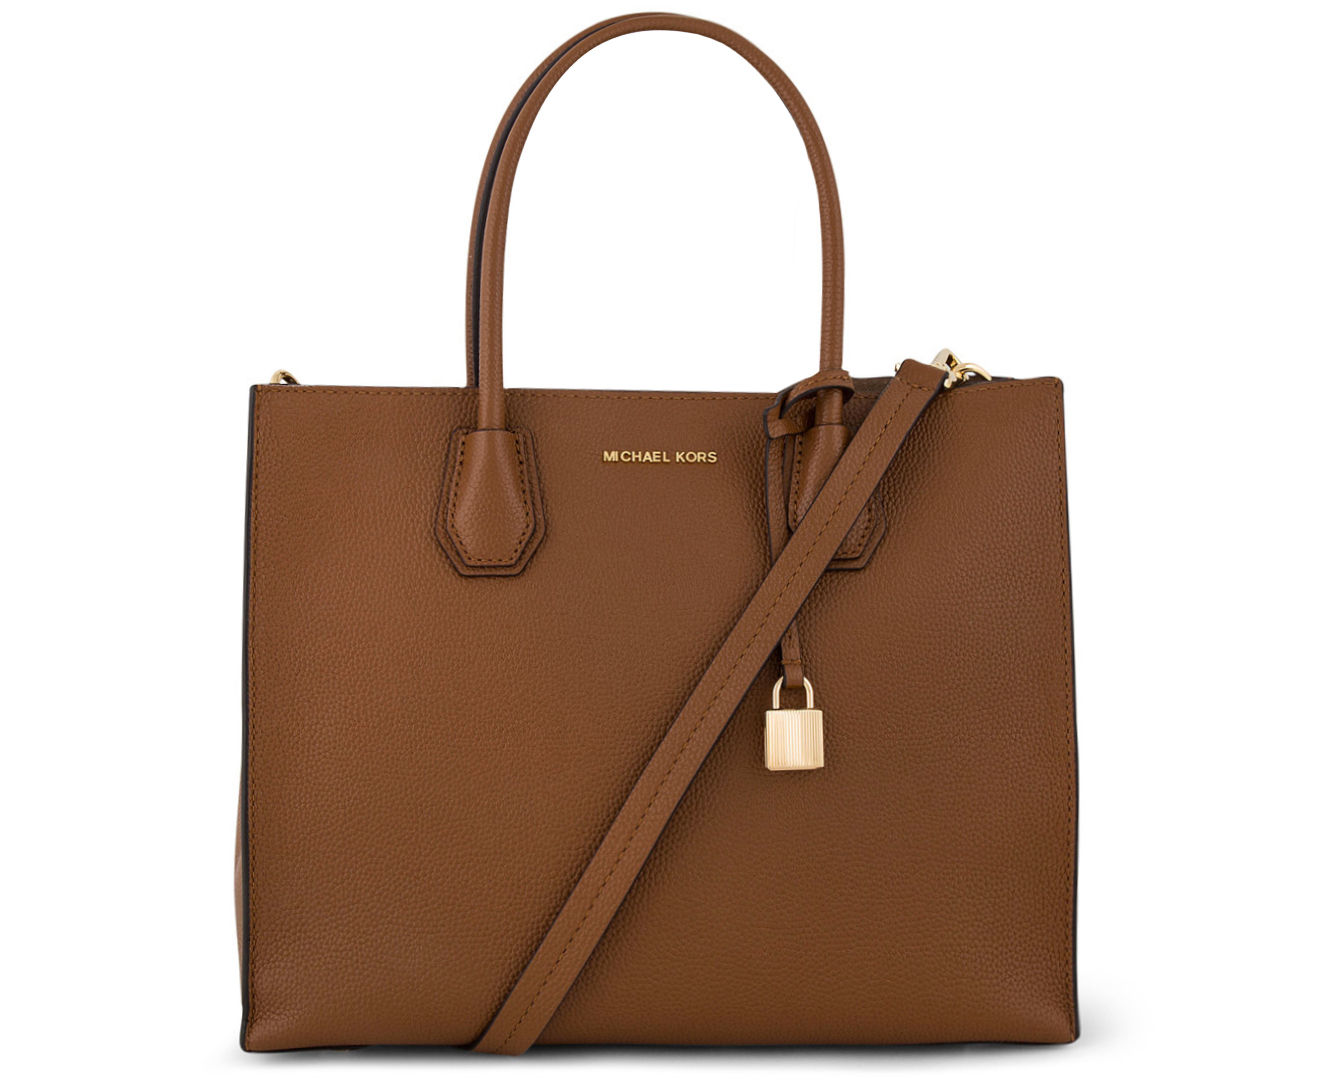 7cffdac84494 Michael Kors Mercer Large Bonded-Leather Crossbody Bag - Brown |  Catch.com.au